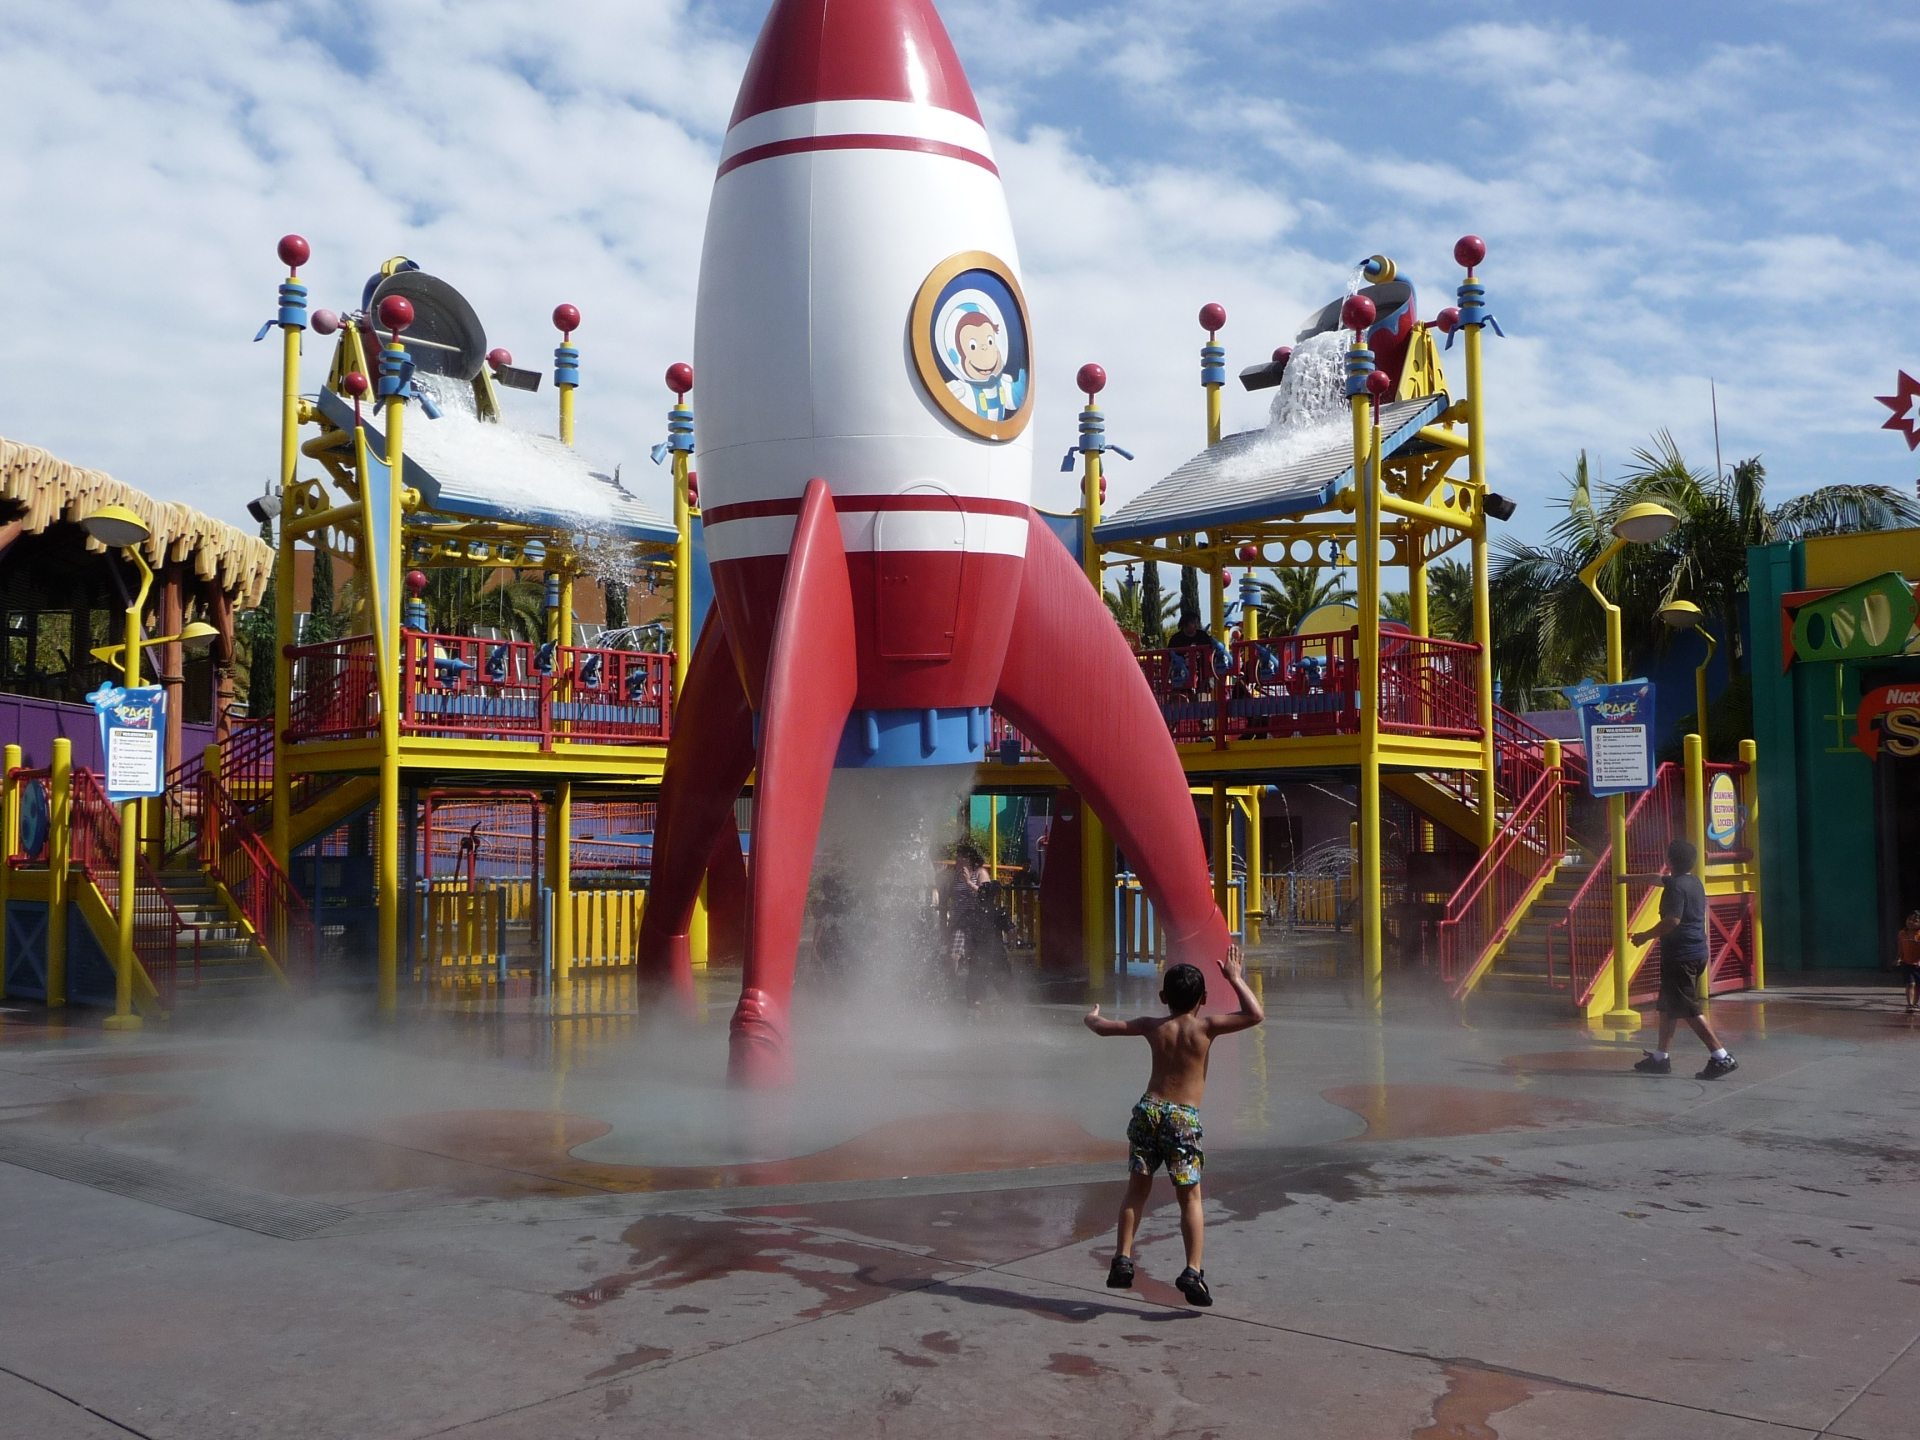 Curious George playground at Universal studios